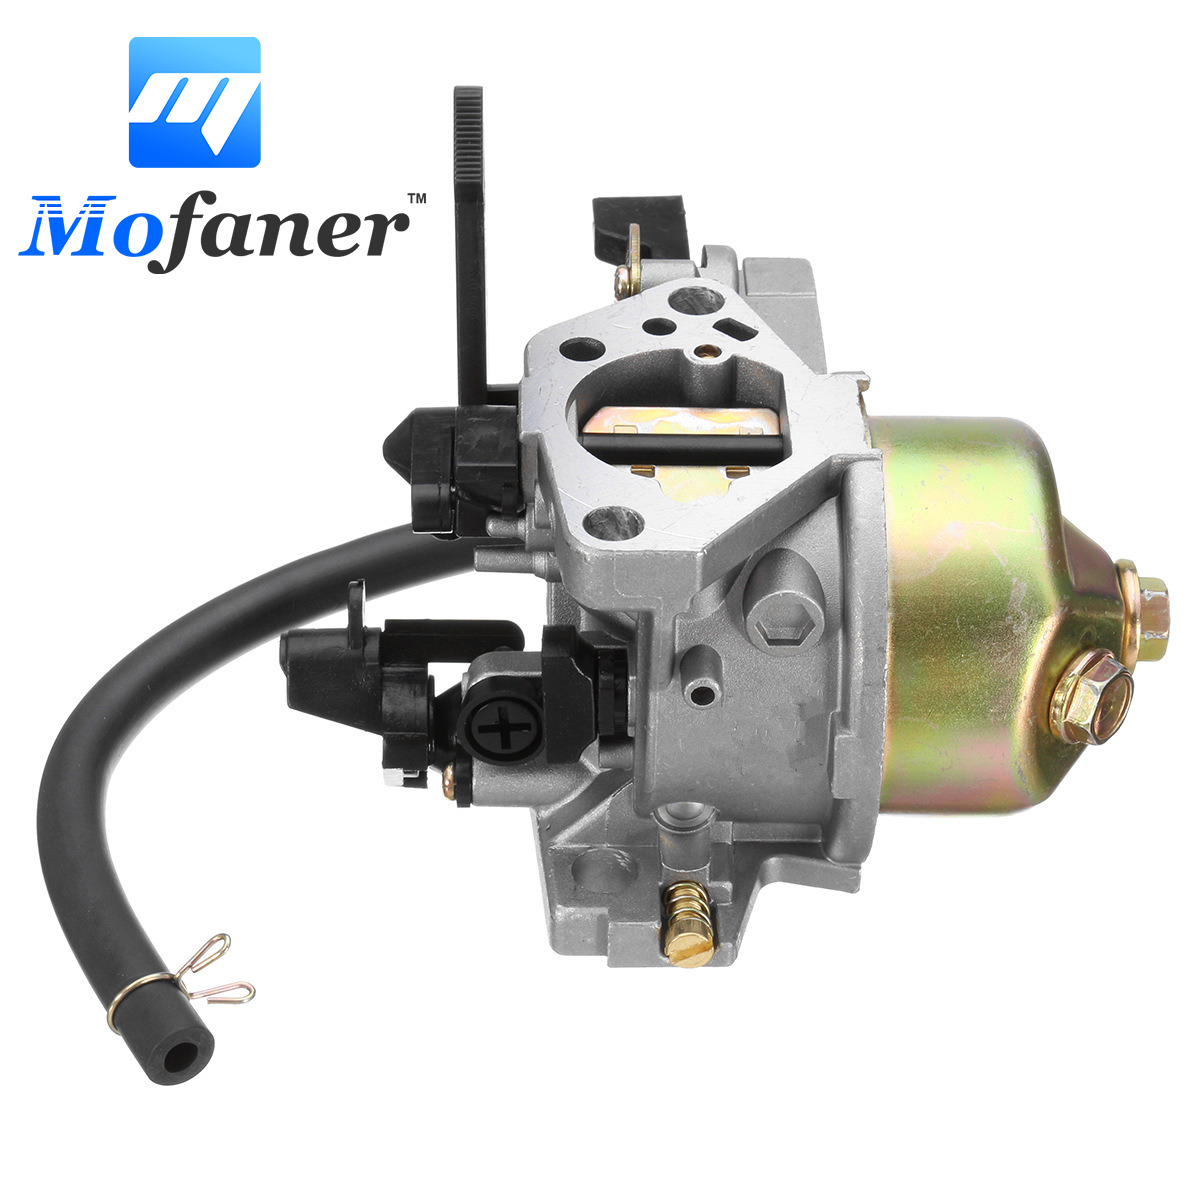 Carburetor Carb Lawn Mower For HONDA GX390 GX 390 13 For HP Engine 16100  ZF6 V01-in Carburetor from Automobiles & Motorcycles on Aliexpress.com |  Alibaba ...